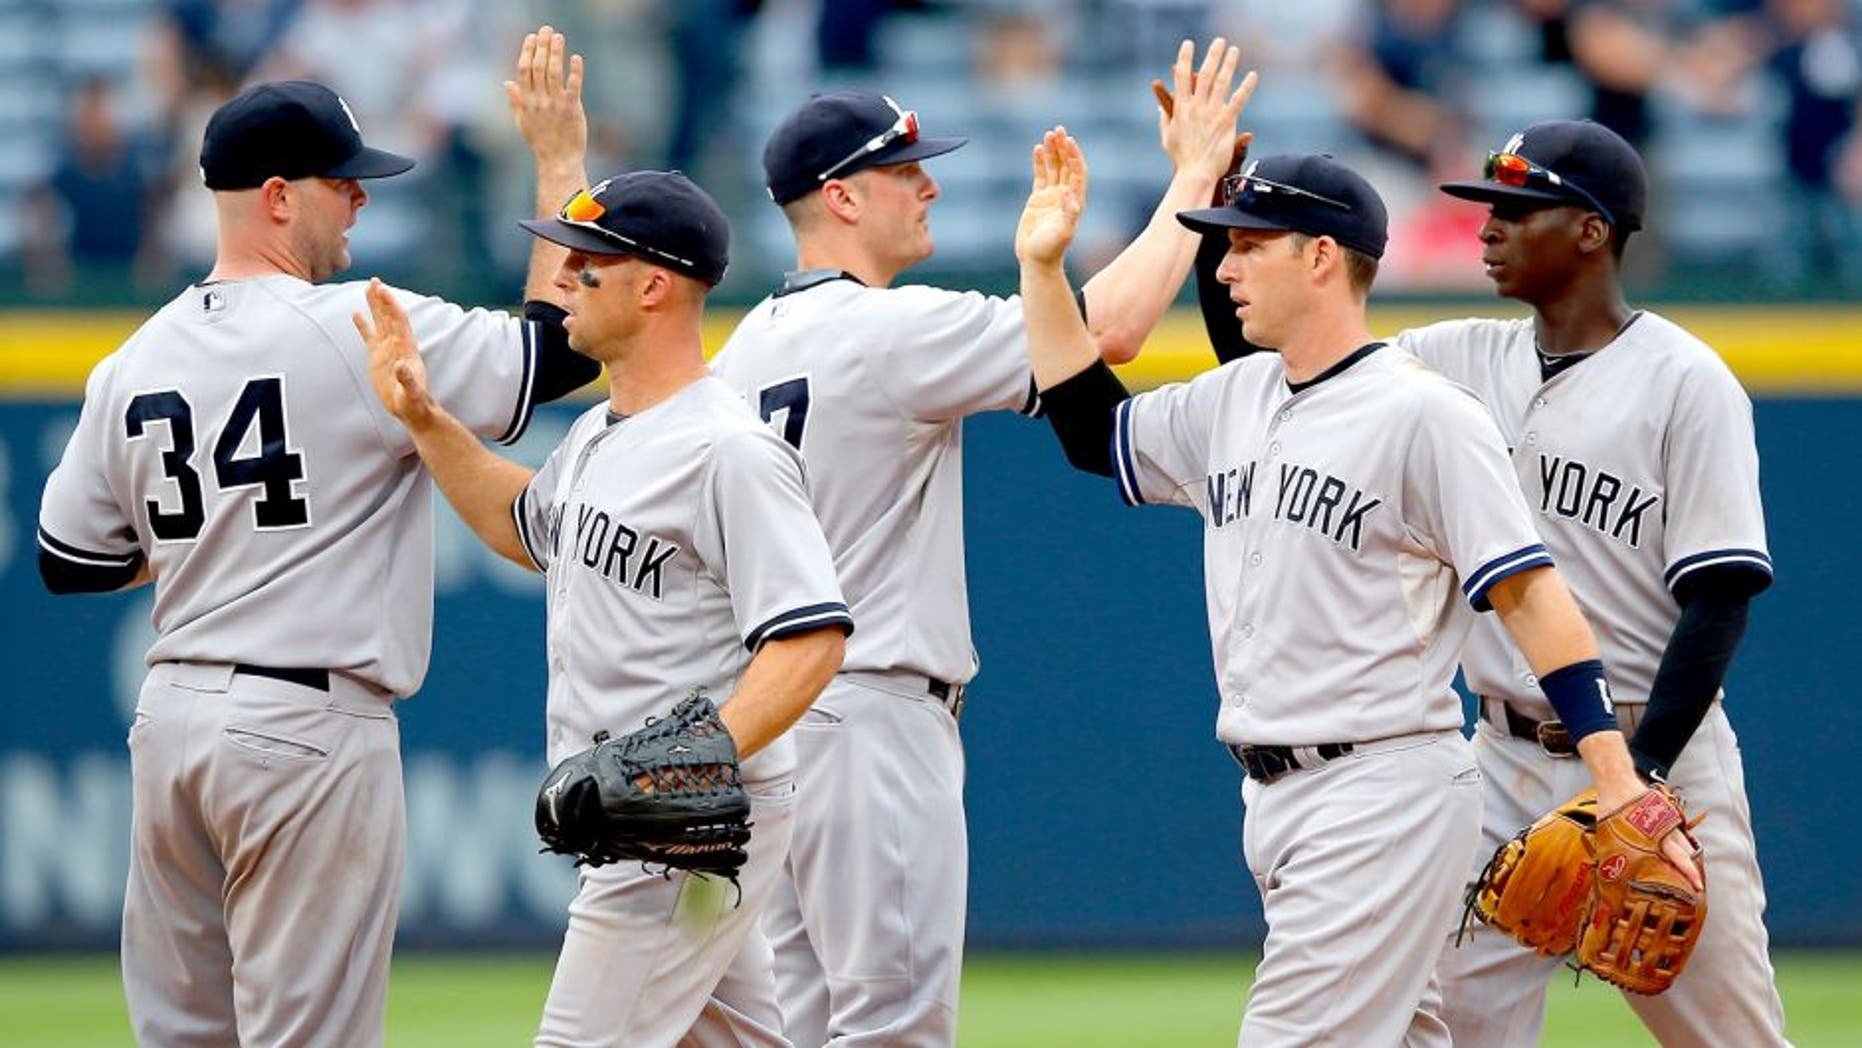 ATLANTA, GA - AUGUST 30: The New York Yankees celebrate their 20-6 win over the Atlanta Braves at Turner Field on August 30, 2015 in Atlanta, Georgia. (Photo by Kevin C. Cox/Getty Images)